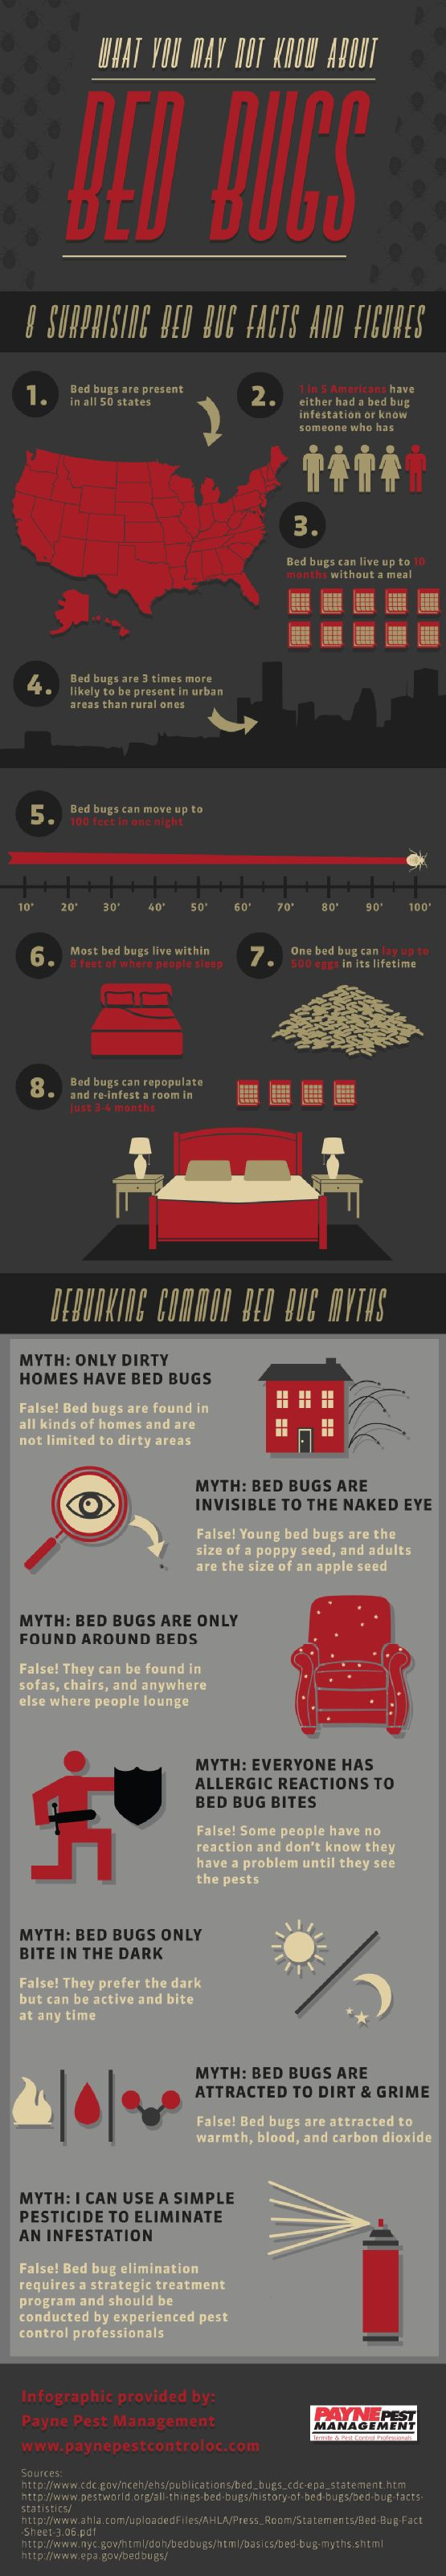 Many people think that bed bugs are only found around beds